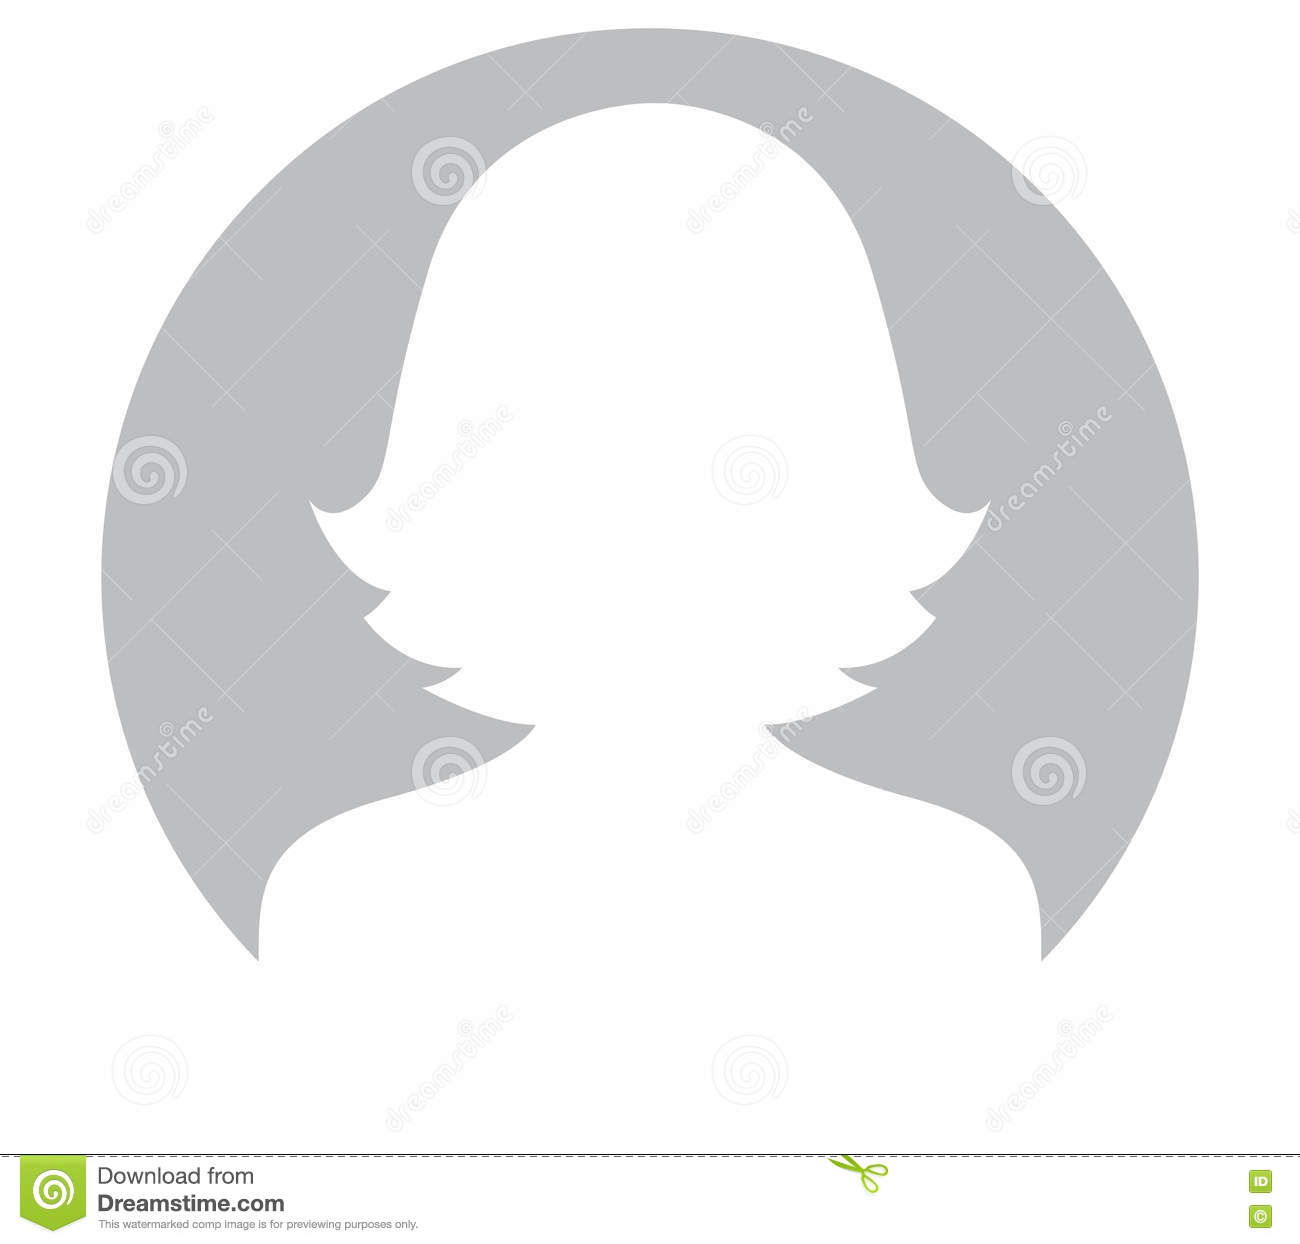 Grey Woman Avatar